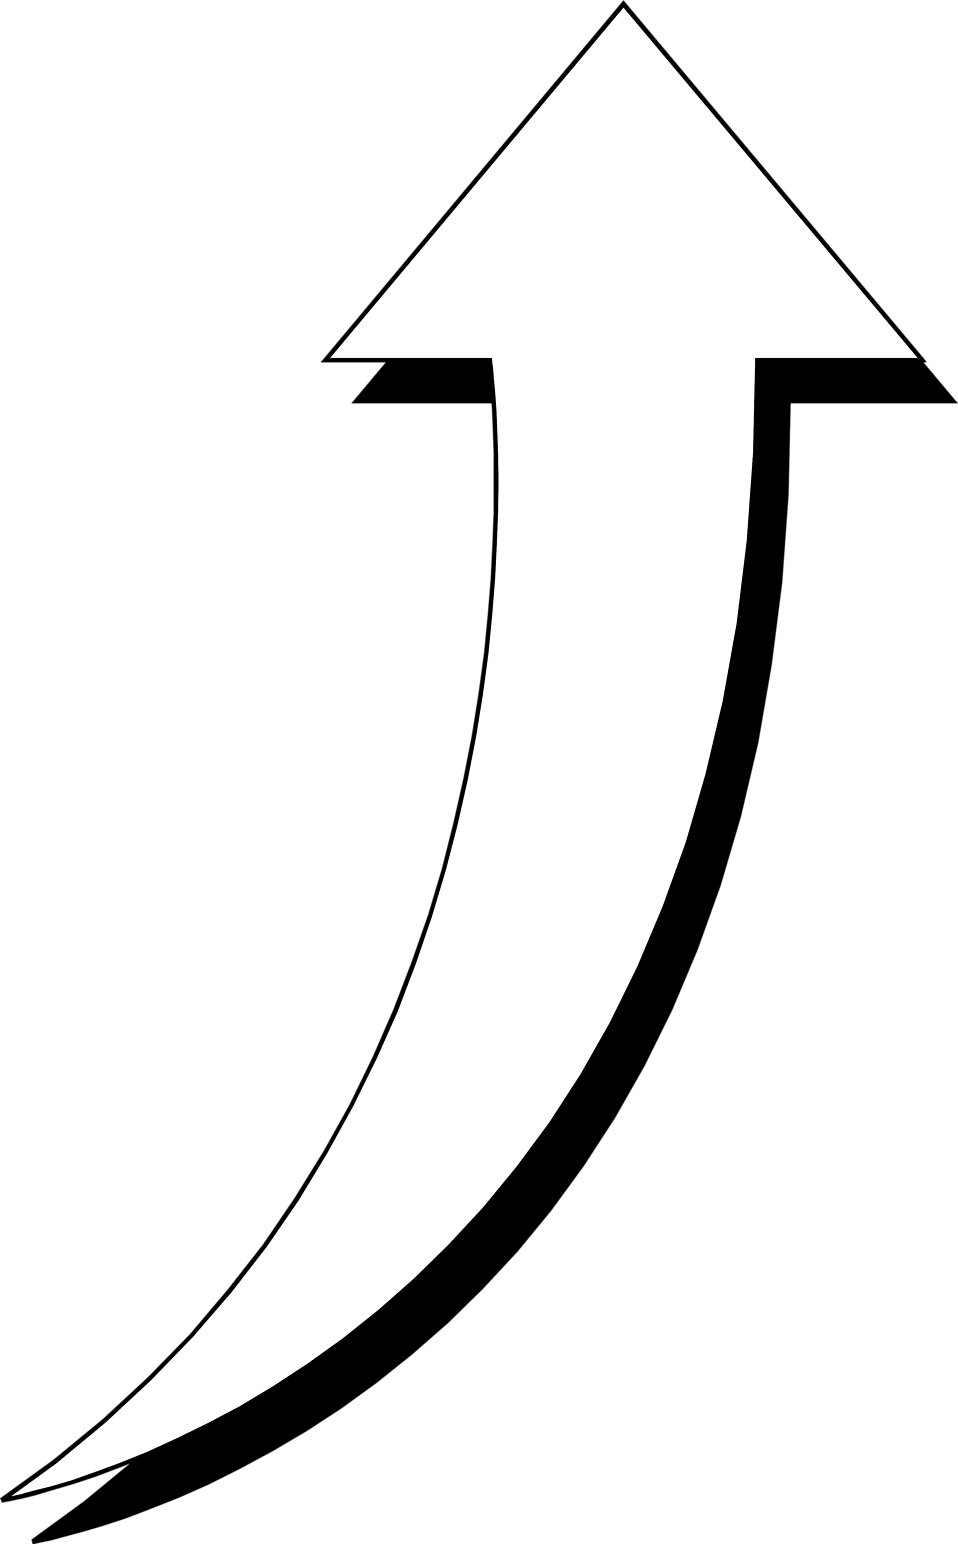 Curve computer icons clip. Free black and white curved triangle clipart